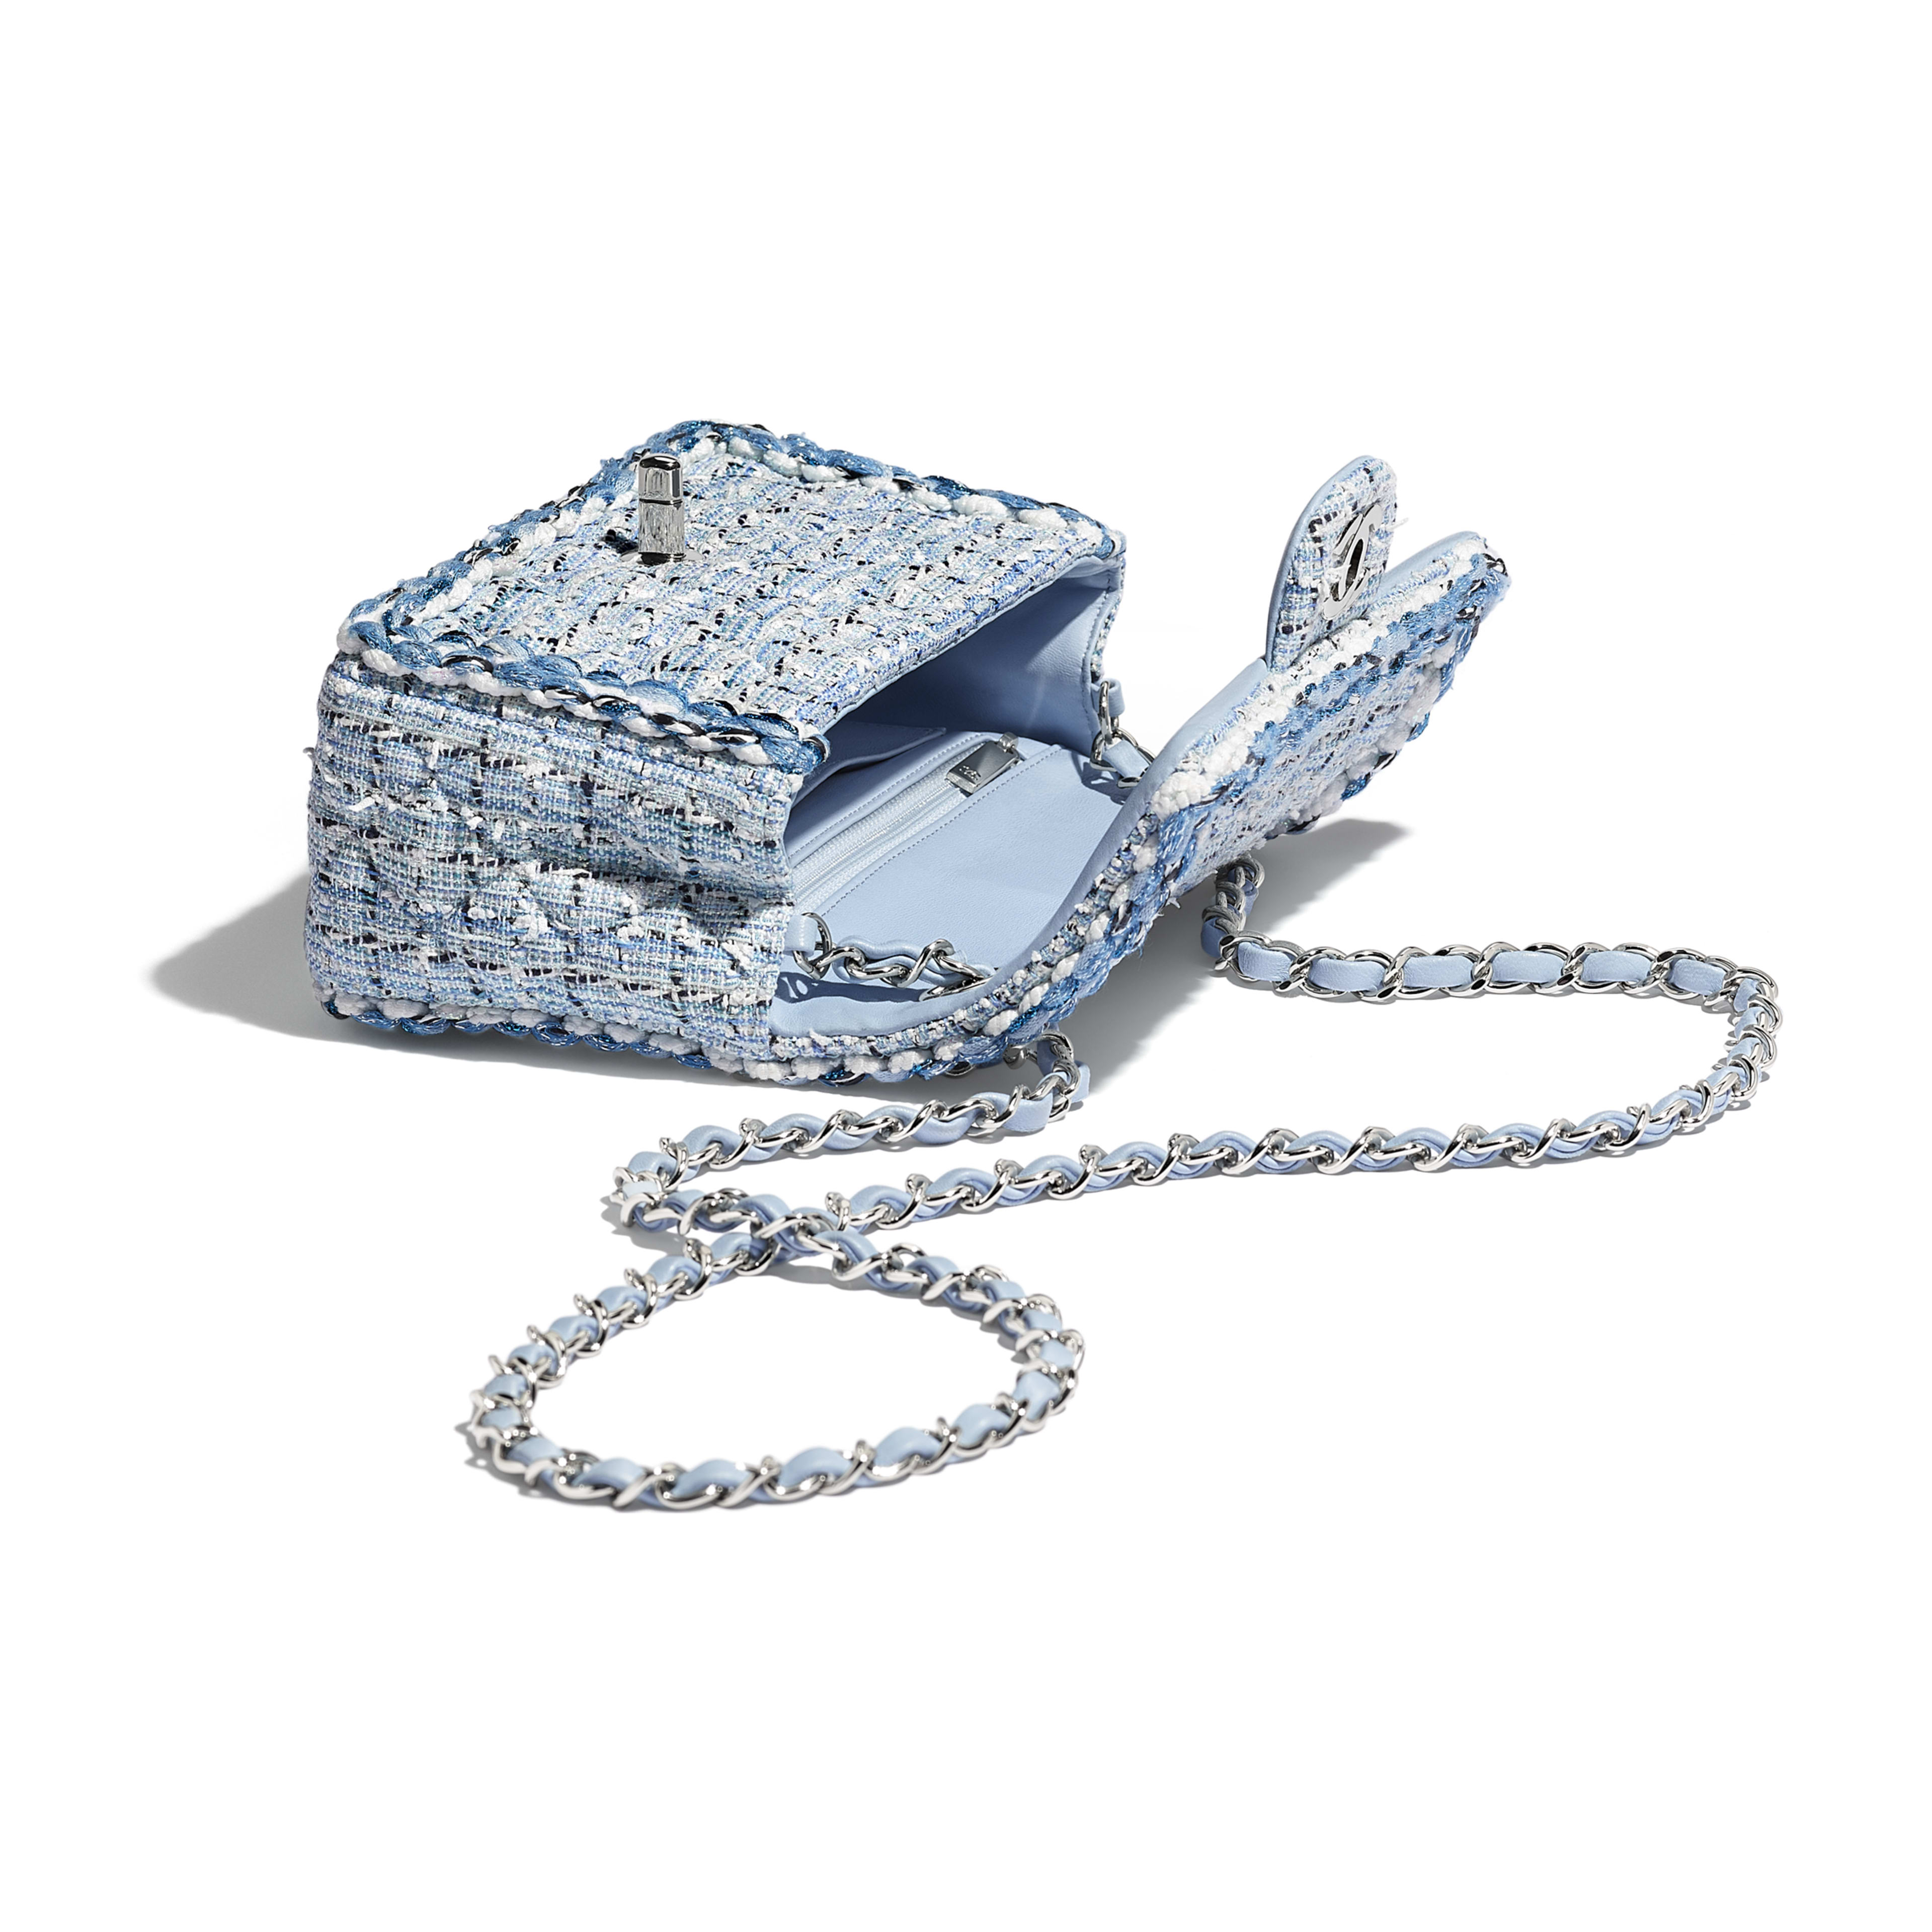 Mini Flap Bag - Blue & White - Tweed, Braid & Silver-Tone Metal - Other view - see full sized version